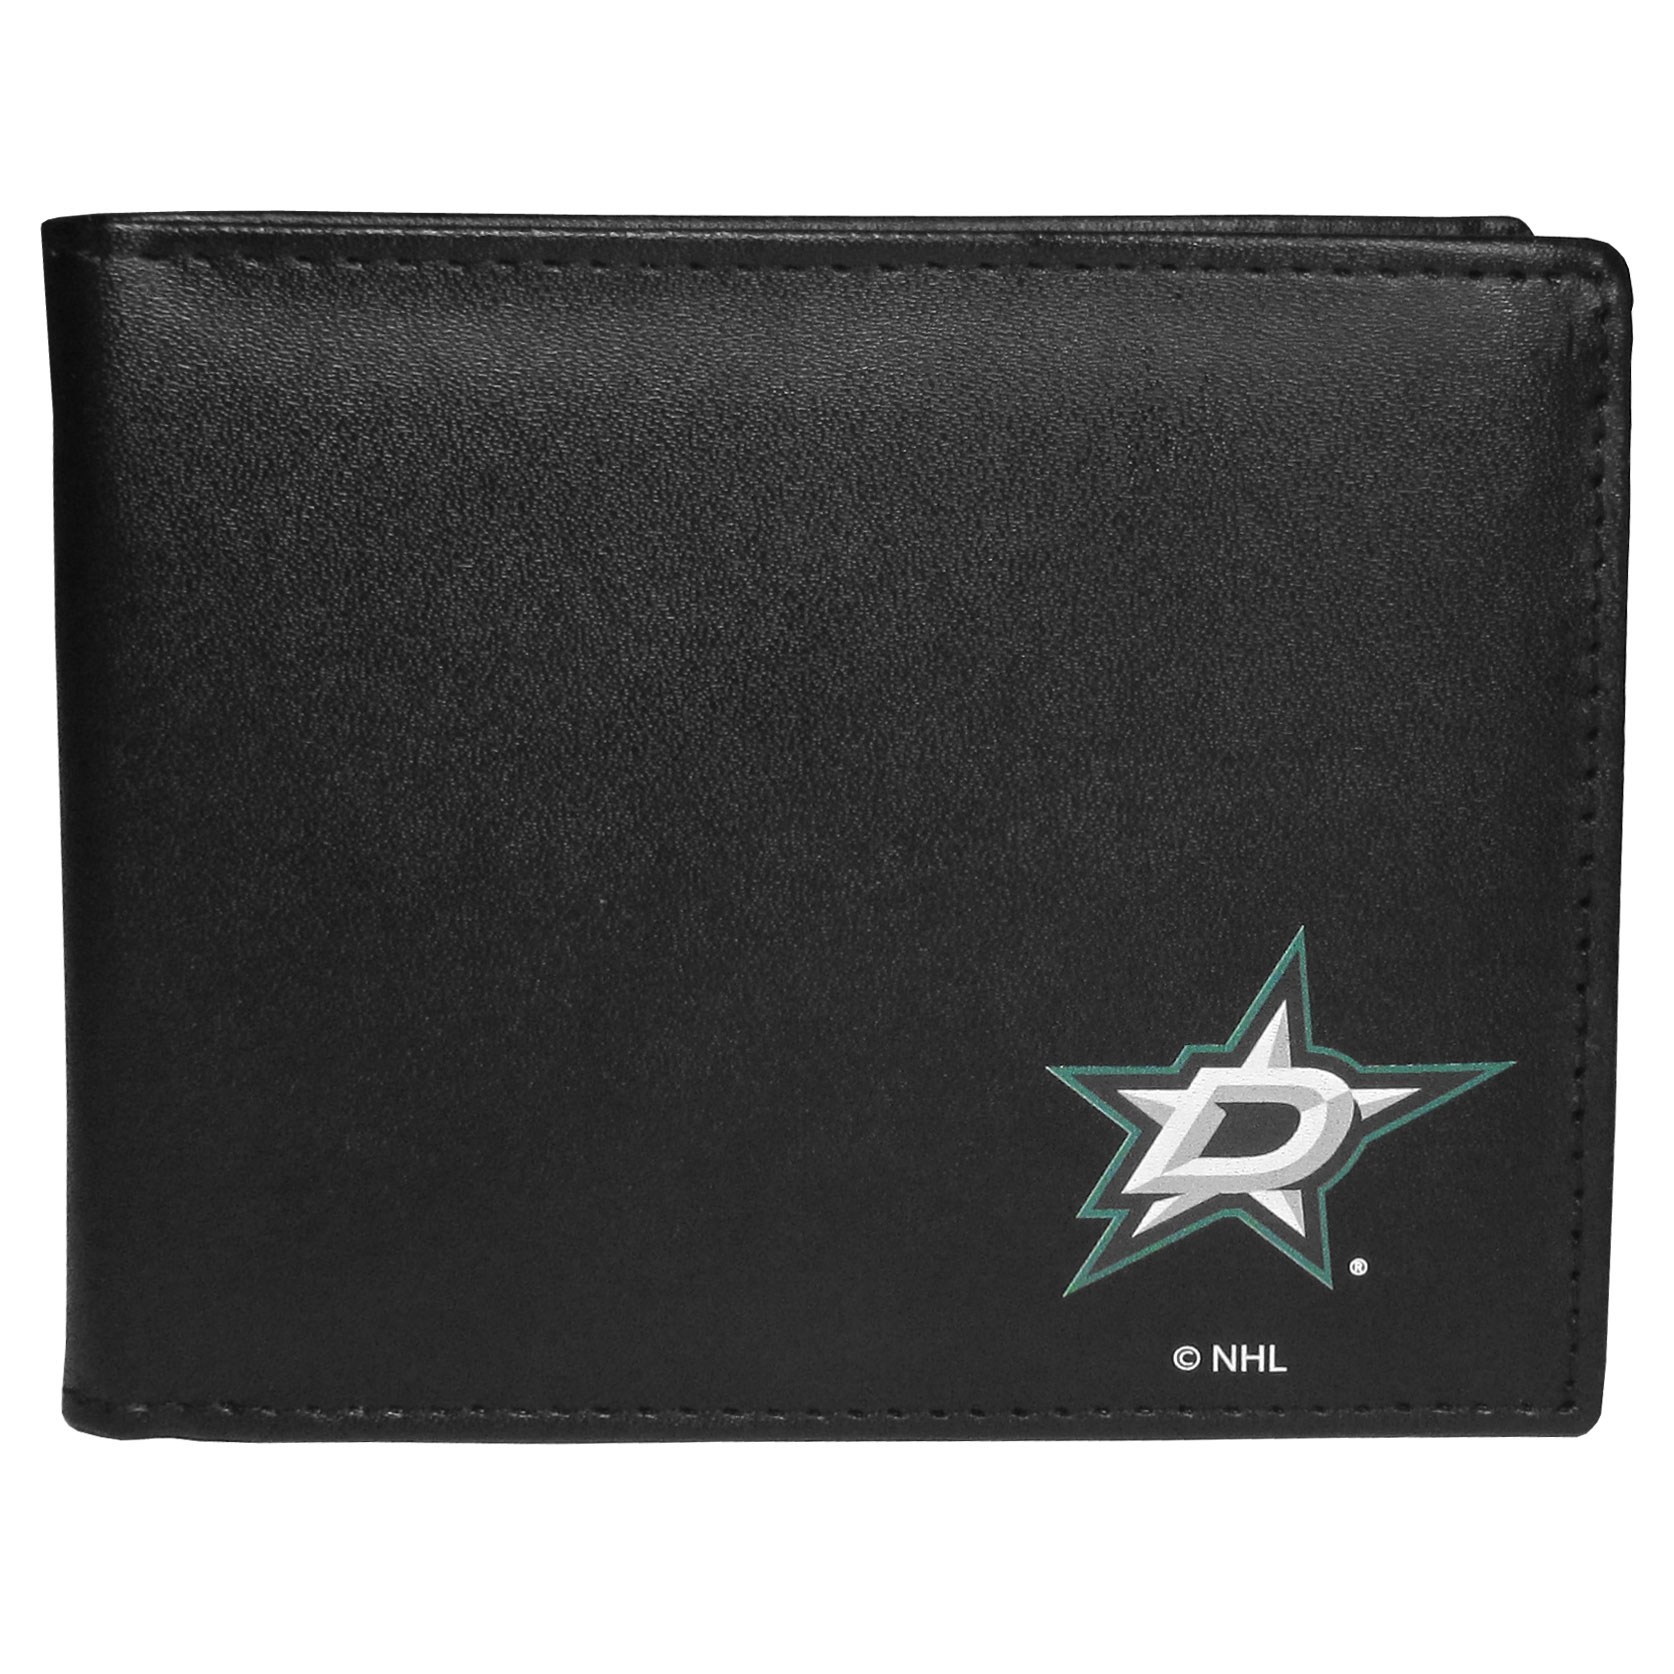 Dallas Stars Bi-fold Wallet - Sports fans do not have to sacrifice style with this classic bi-fold wallet that sports a Dallas Stars™ emblem. This men's fashion accessory has a leather grain look and expert craftmanship for a quality wallet at a great price. The wallet features inner credit card slots, windowed ID slot and a large billfold pocket. The front of the wallet features a printed team logo.